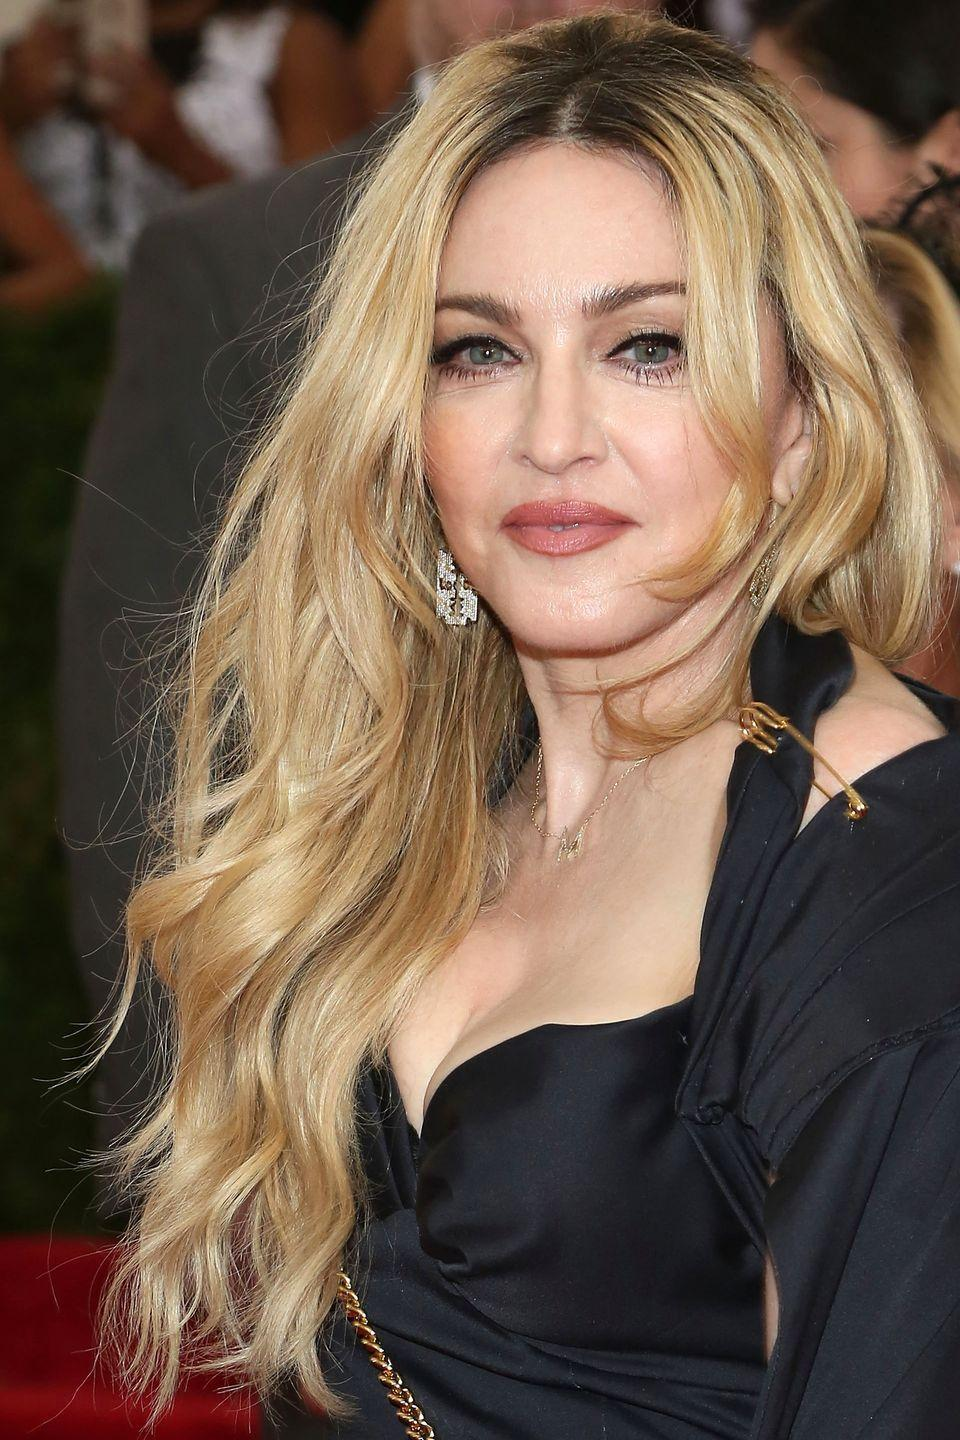 <p>Madonna's name is practically synonymous with blondness. After all, her Blonde Ambition tour was one of the biggest of its time!</p>